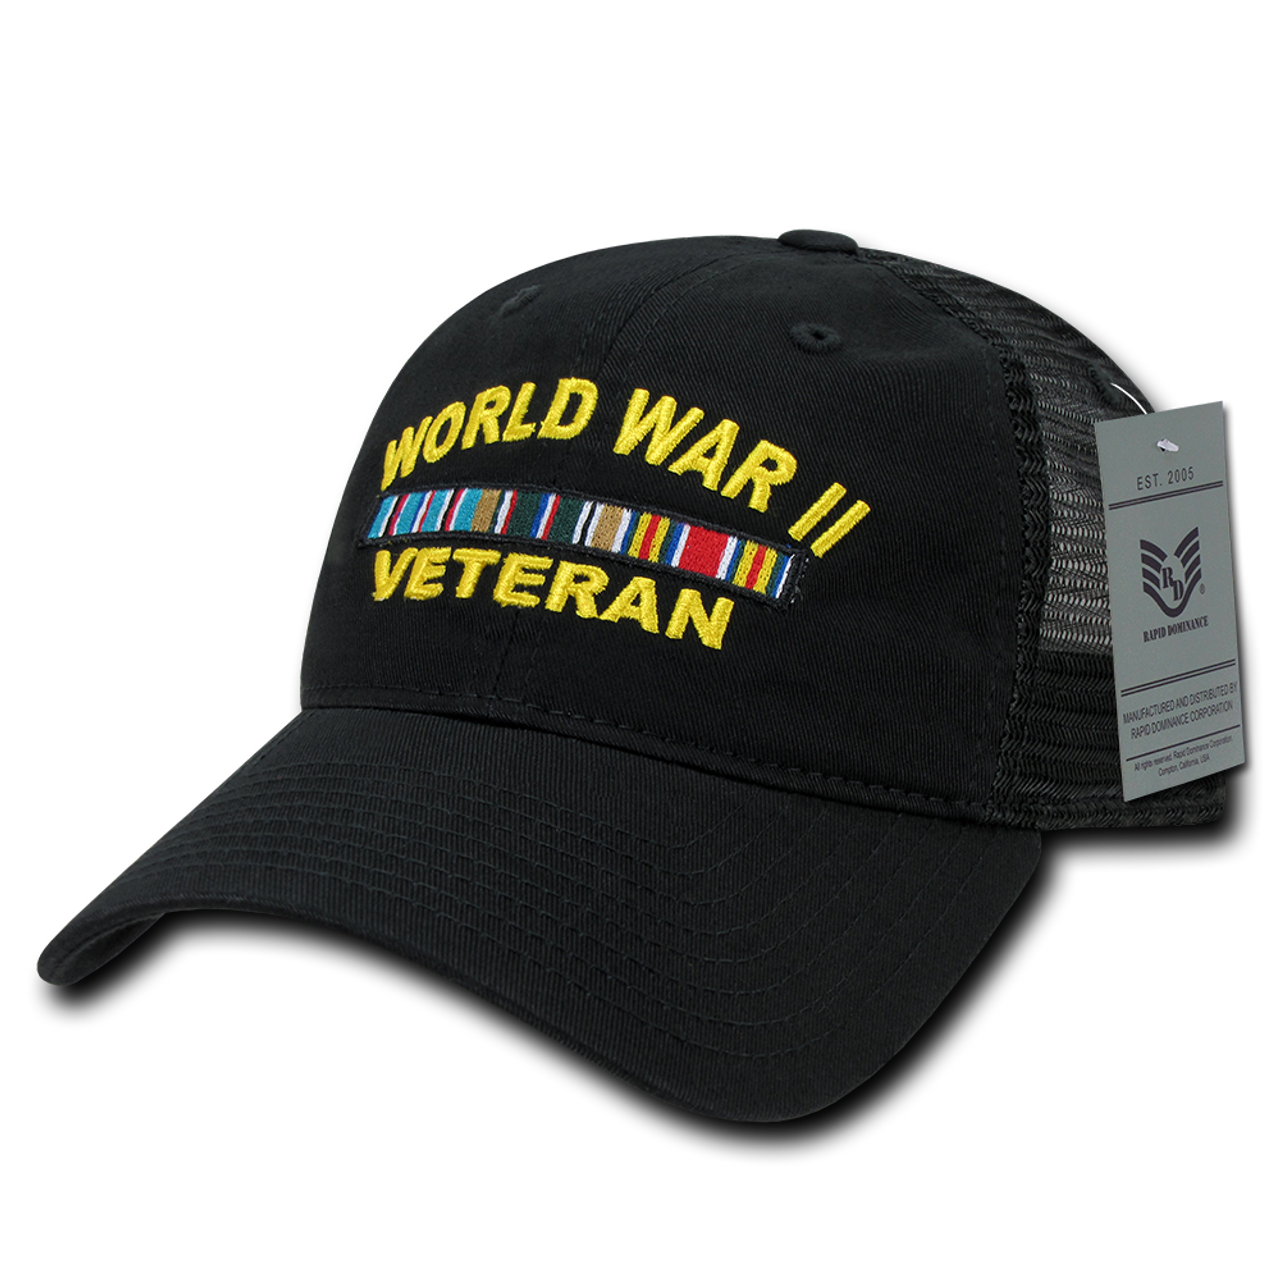 3ae3ab3b780ad S79 - World War II Veteran Cap - Relaxed Trucker - Black -  USMILITARYHATS.COM